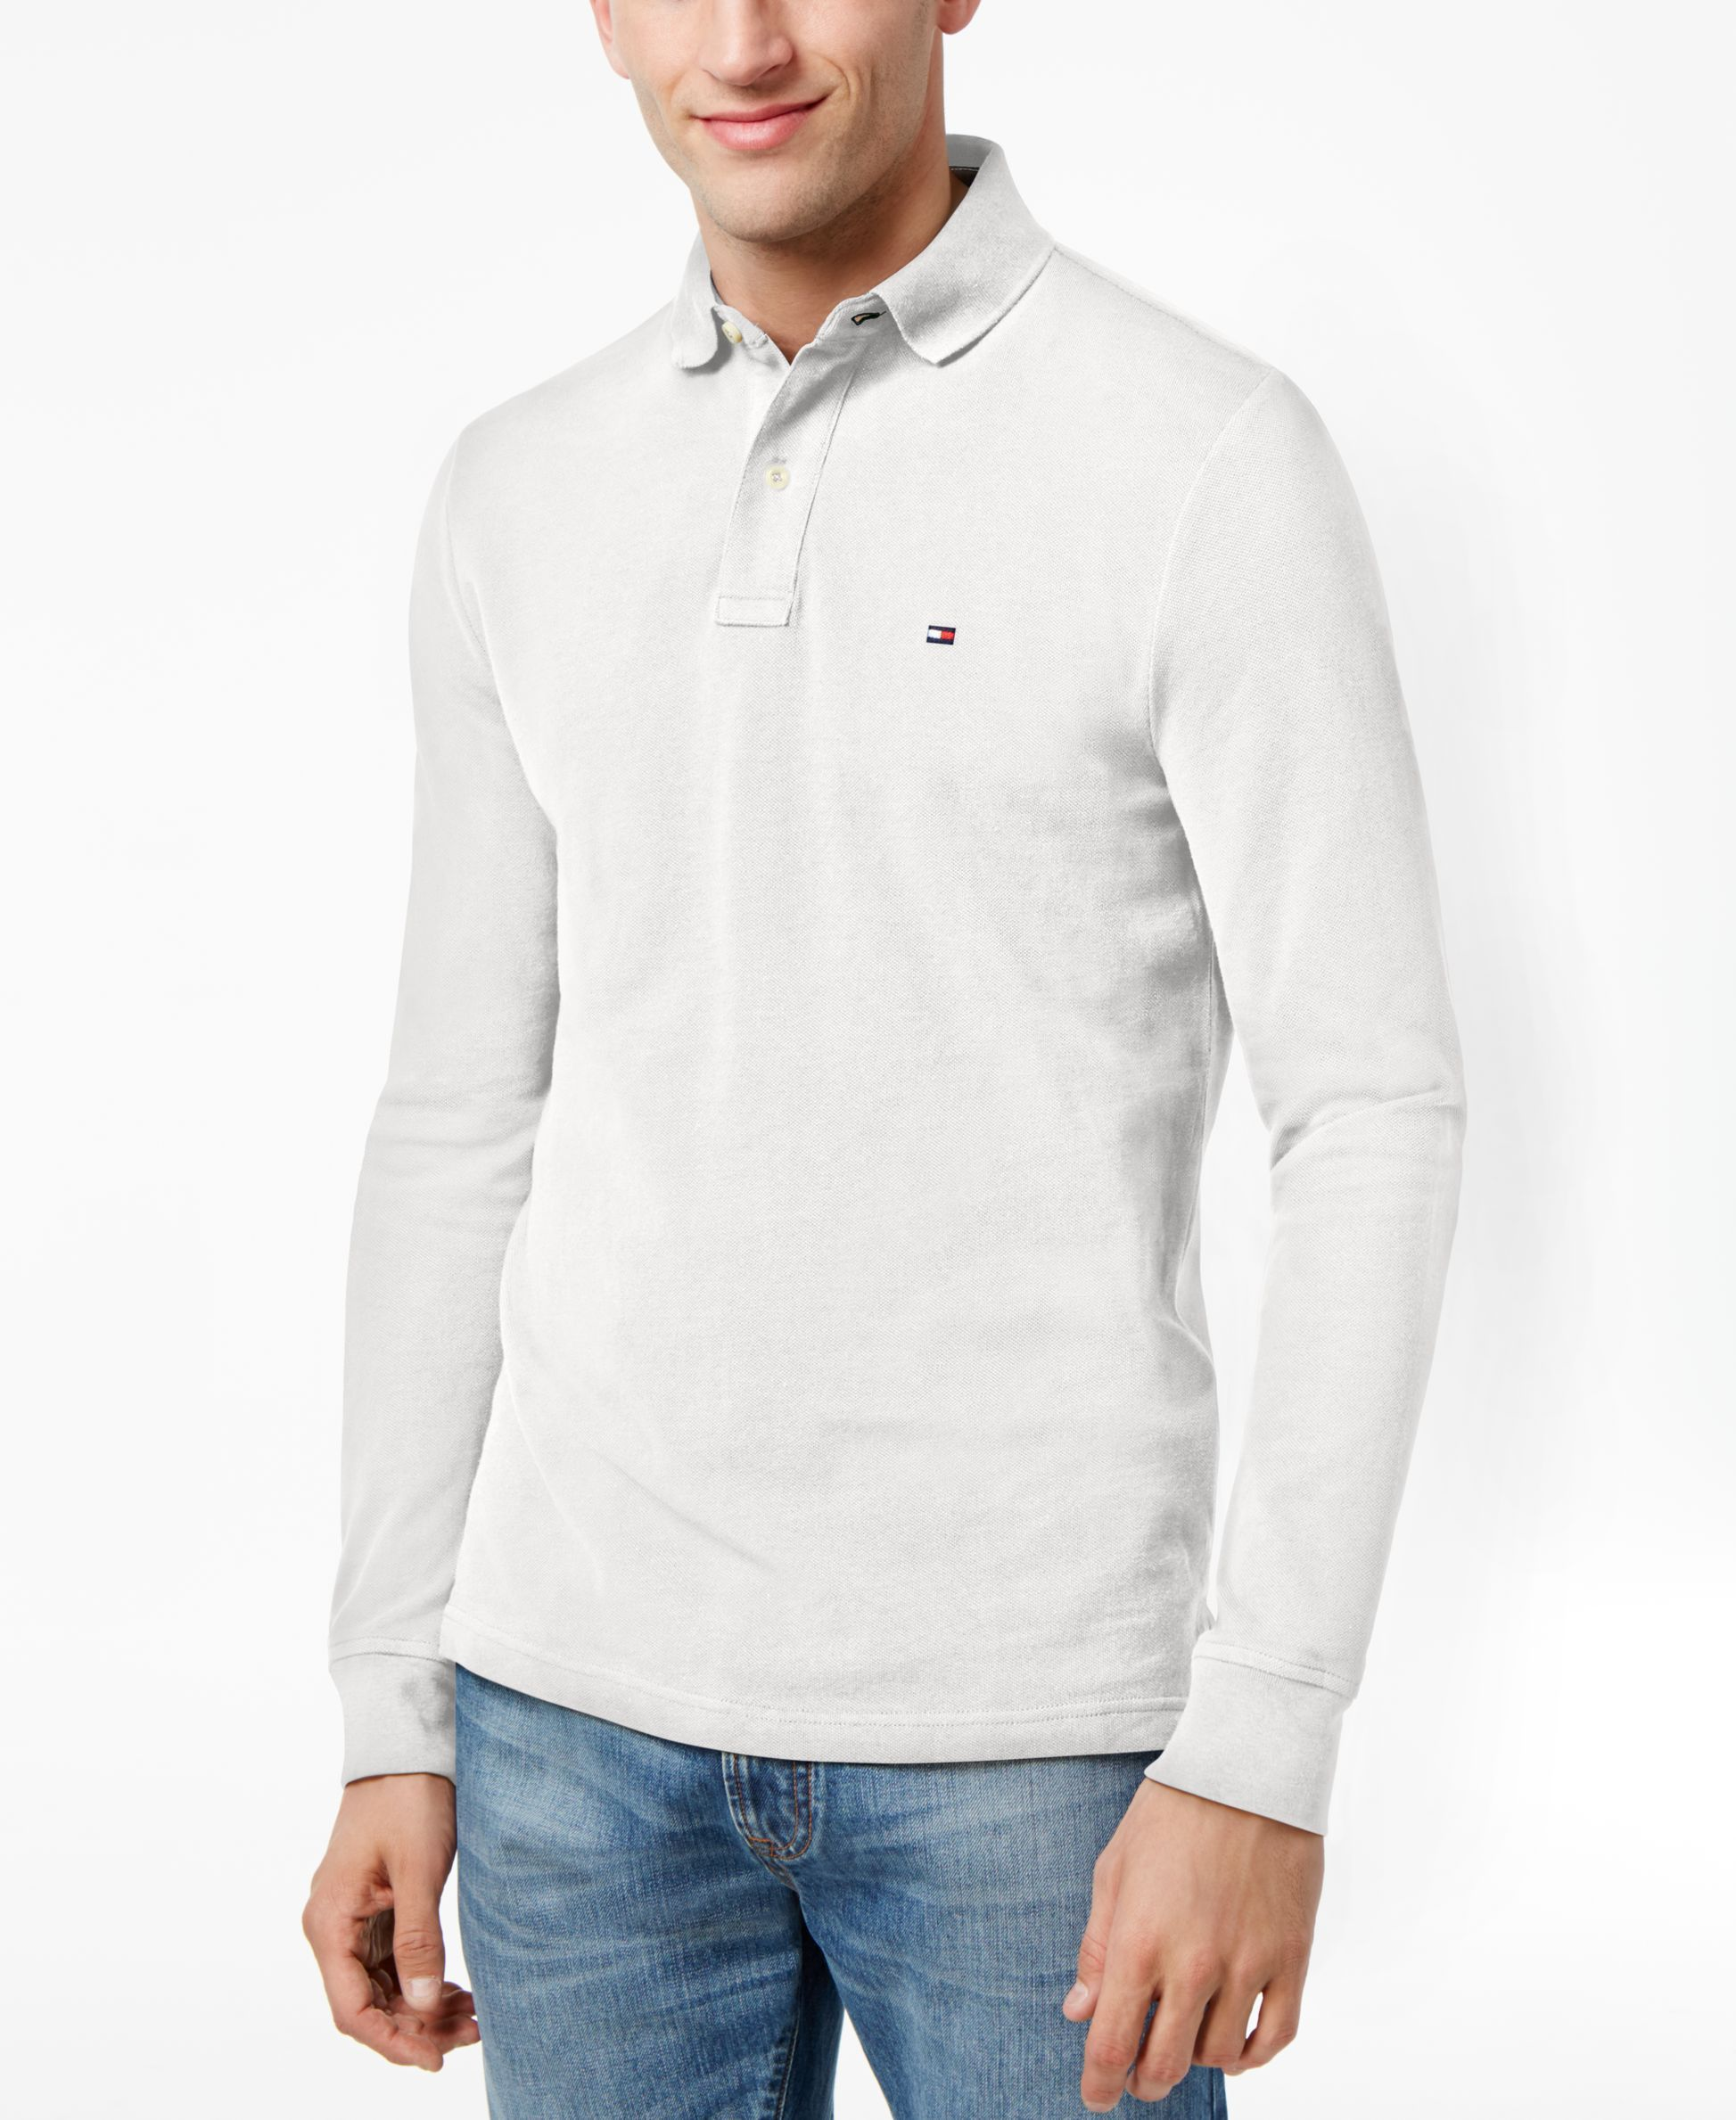 85bd6e31 Tommy Hilfiger Men's Long-Sleeve Classic-Fit Polo   Products   Tommy ...